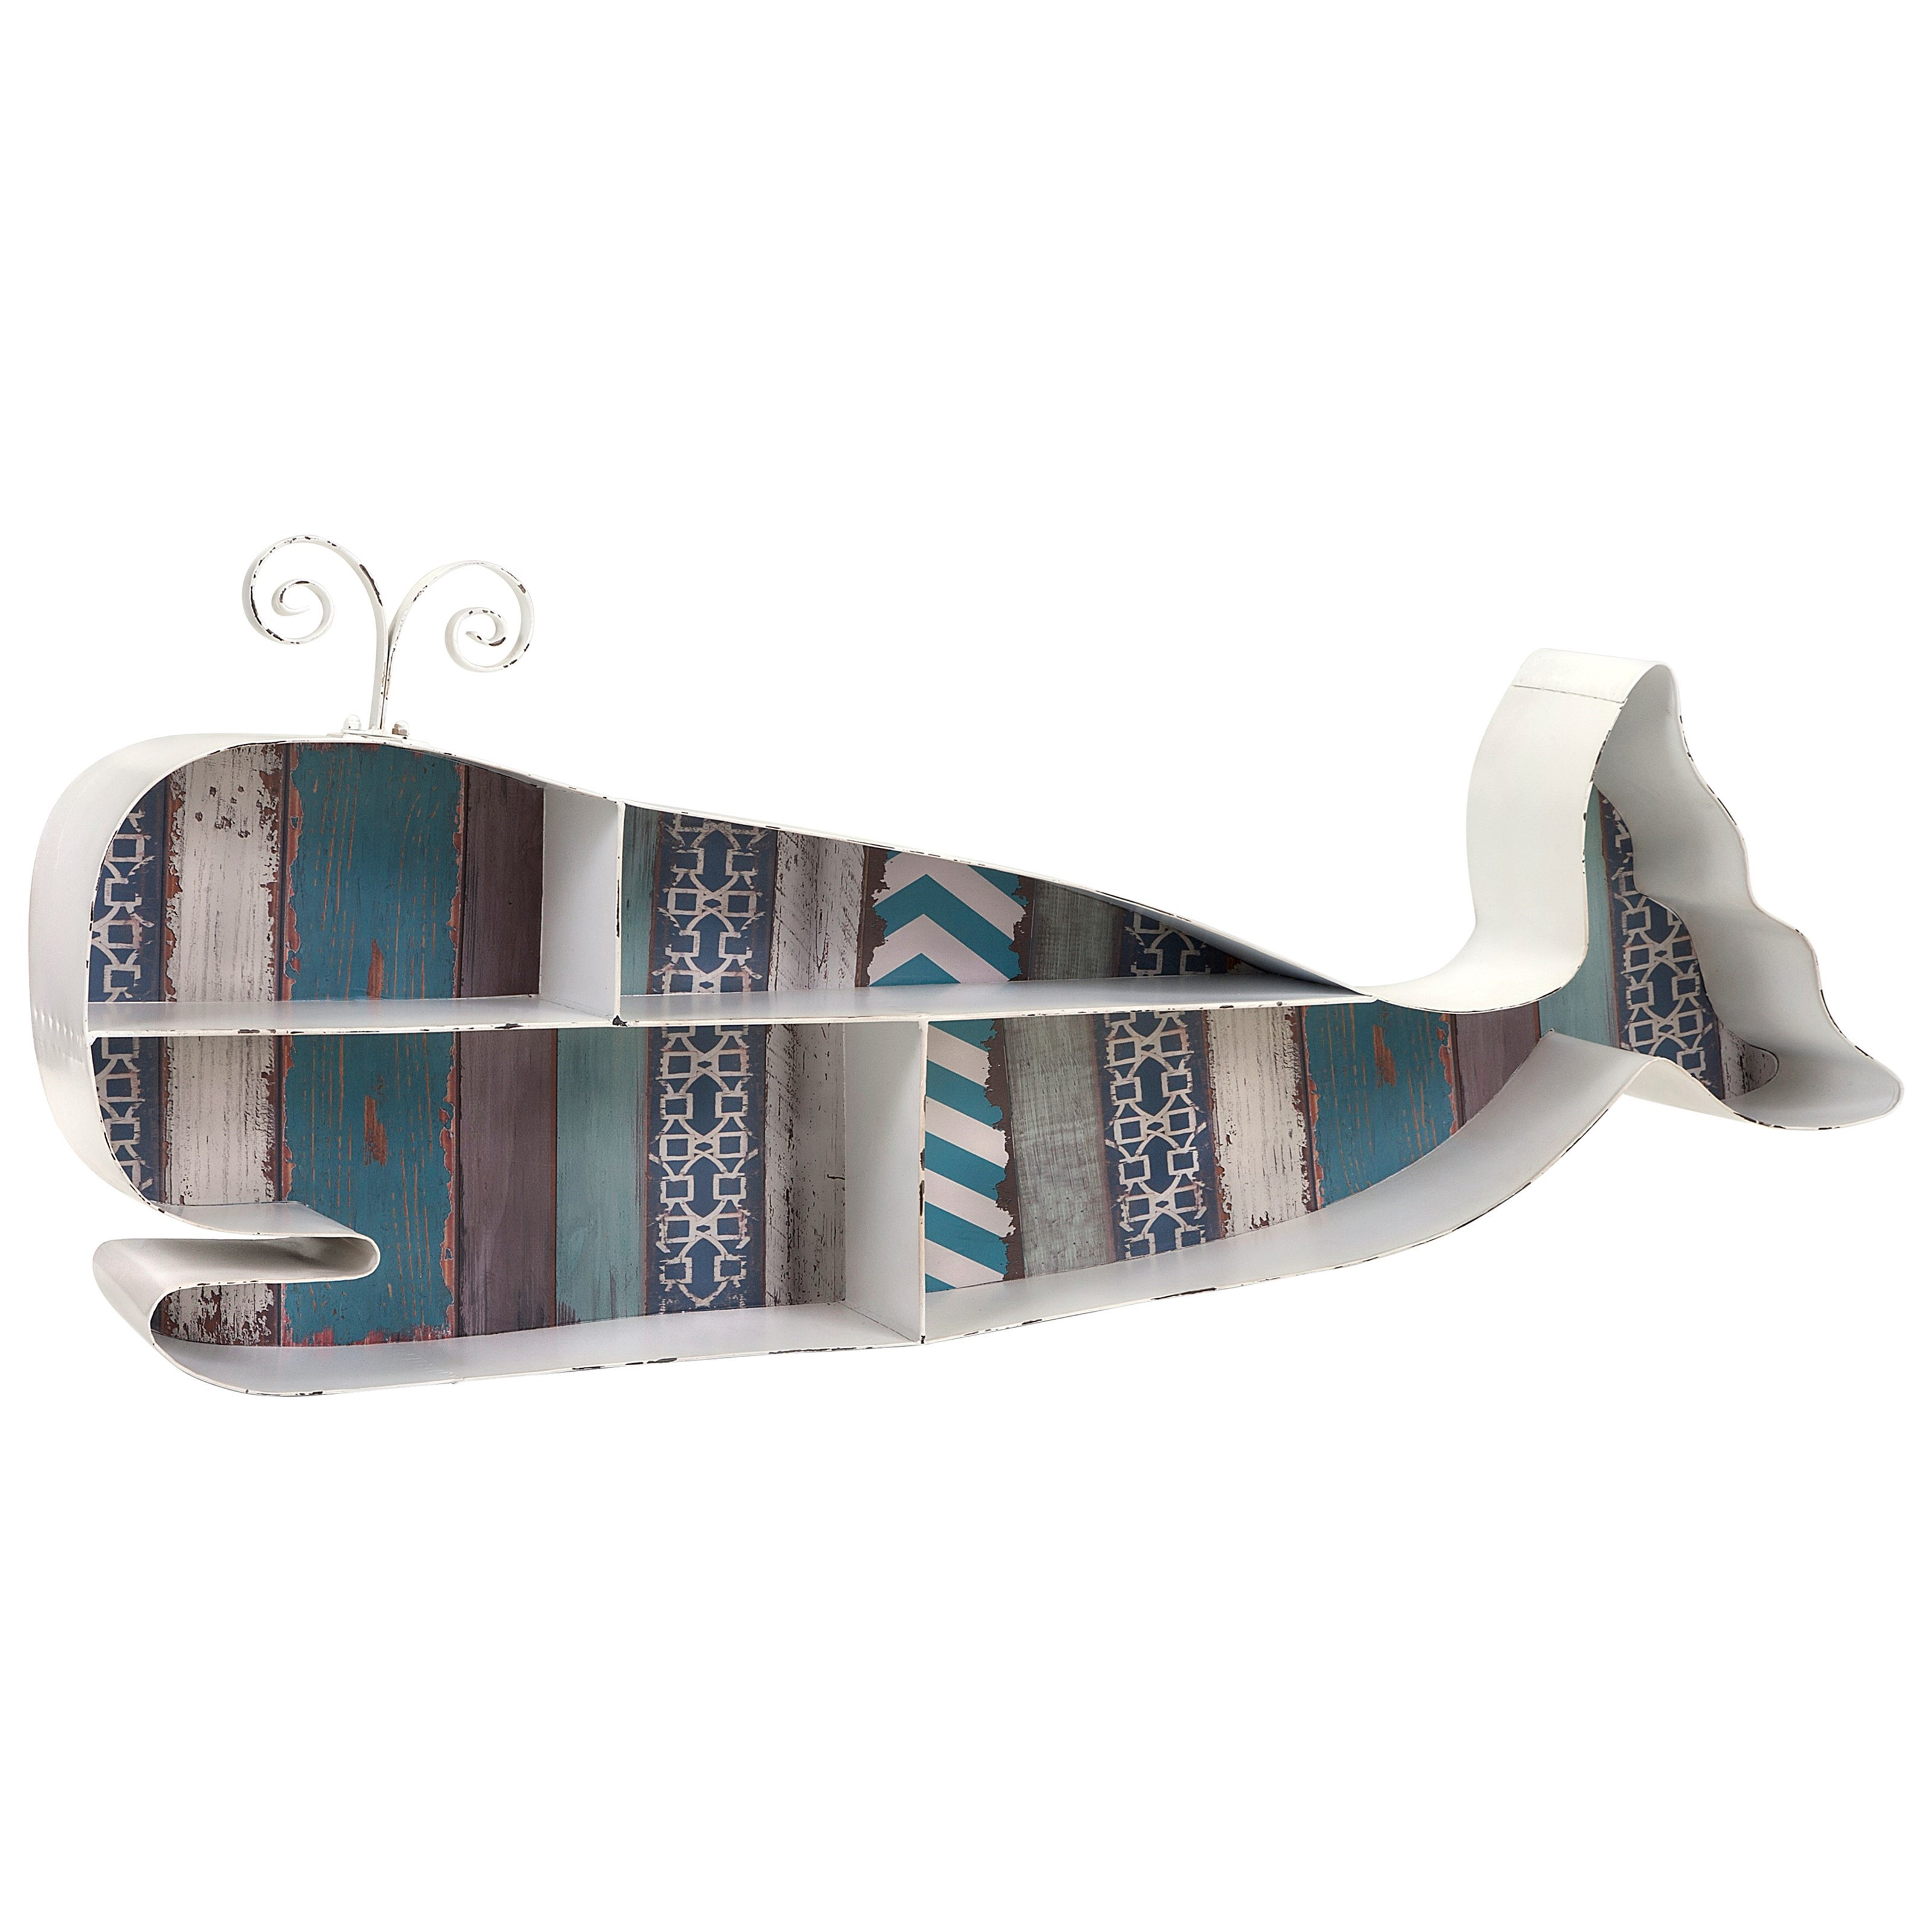 Accent Furniture Whale Wall Shelf by IMAX Worldwide Home at Alison Craig Home Furnishings